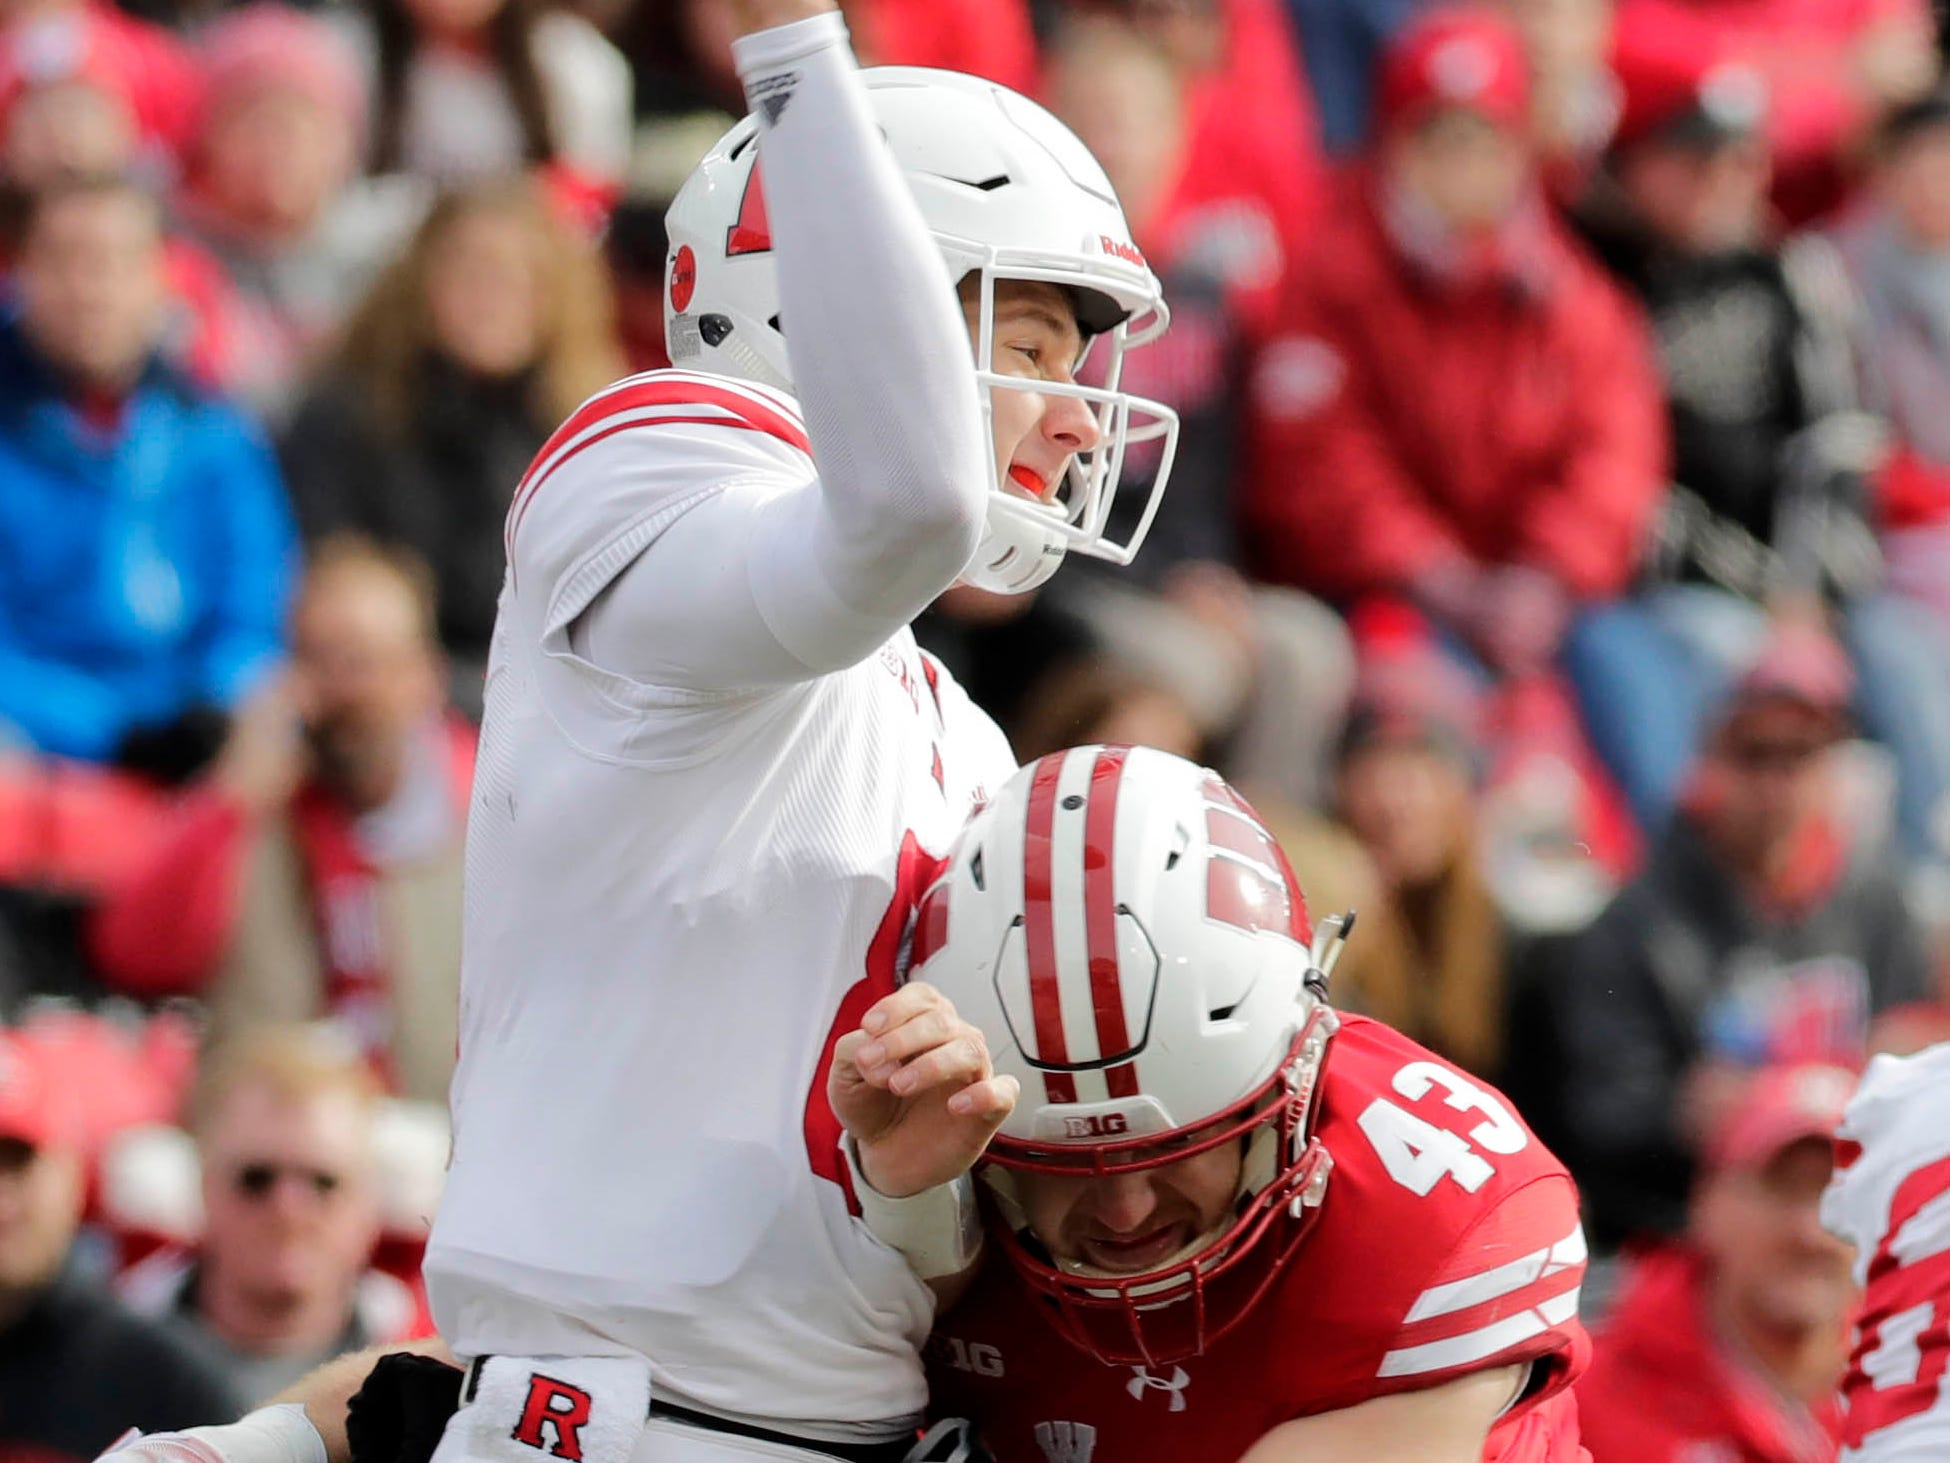 Badgers linebacker Ryan Connelly  hits Rutgers quarterback Artur Sitkowski as he gets ready to release the ball in the second half Saturday.